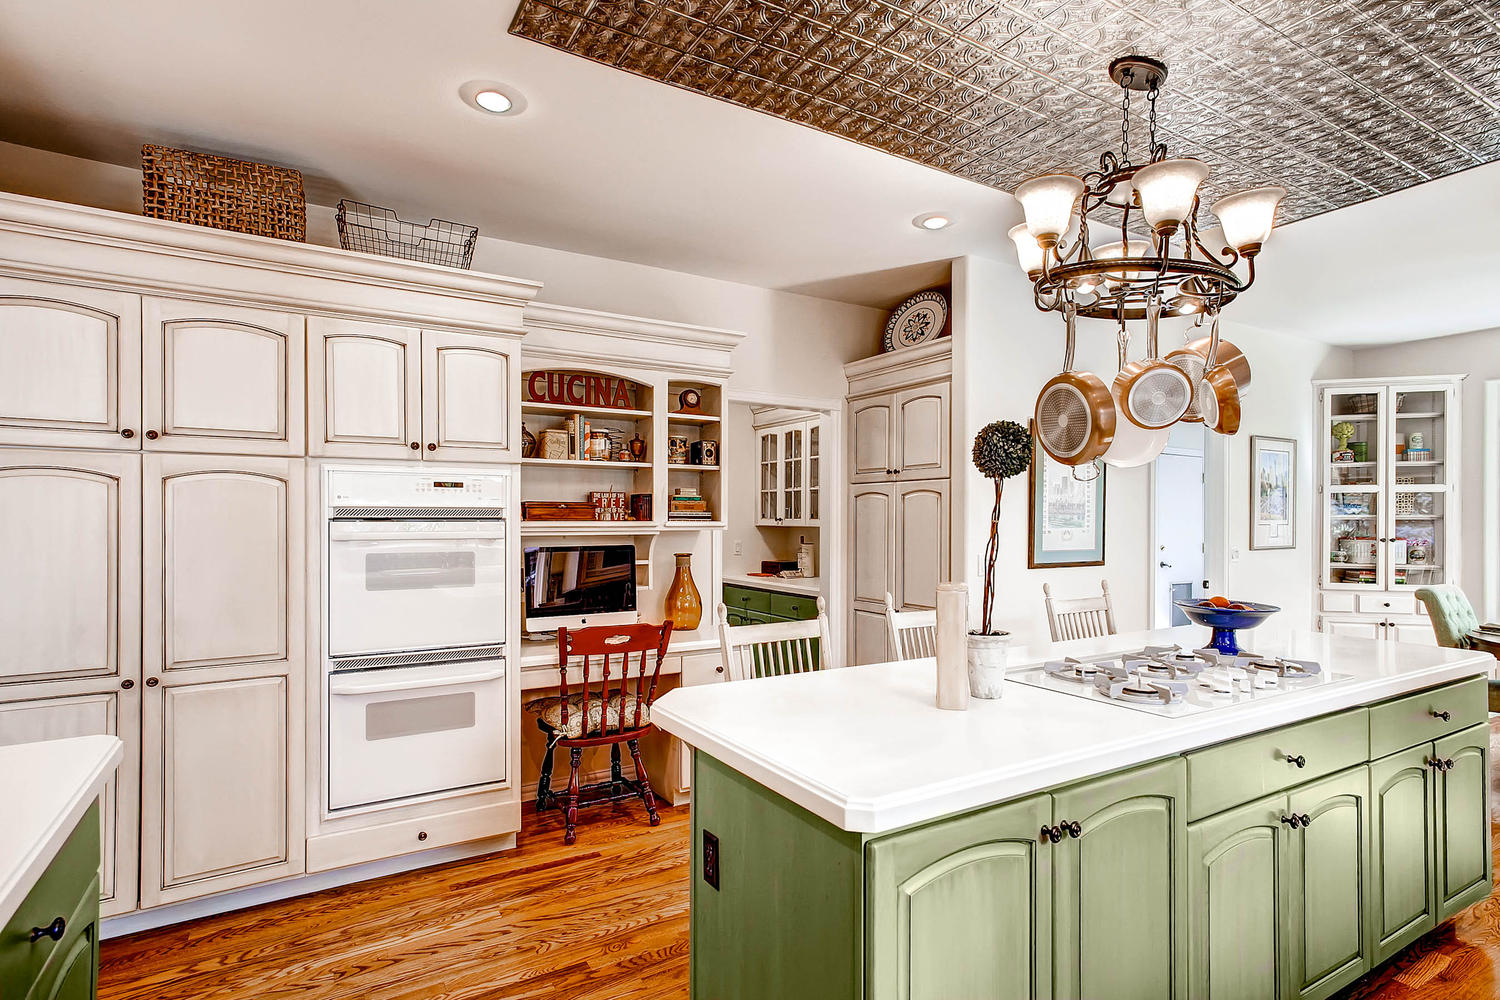 Before & After Kitchen redecorating in Centennial, Colorado